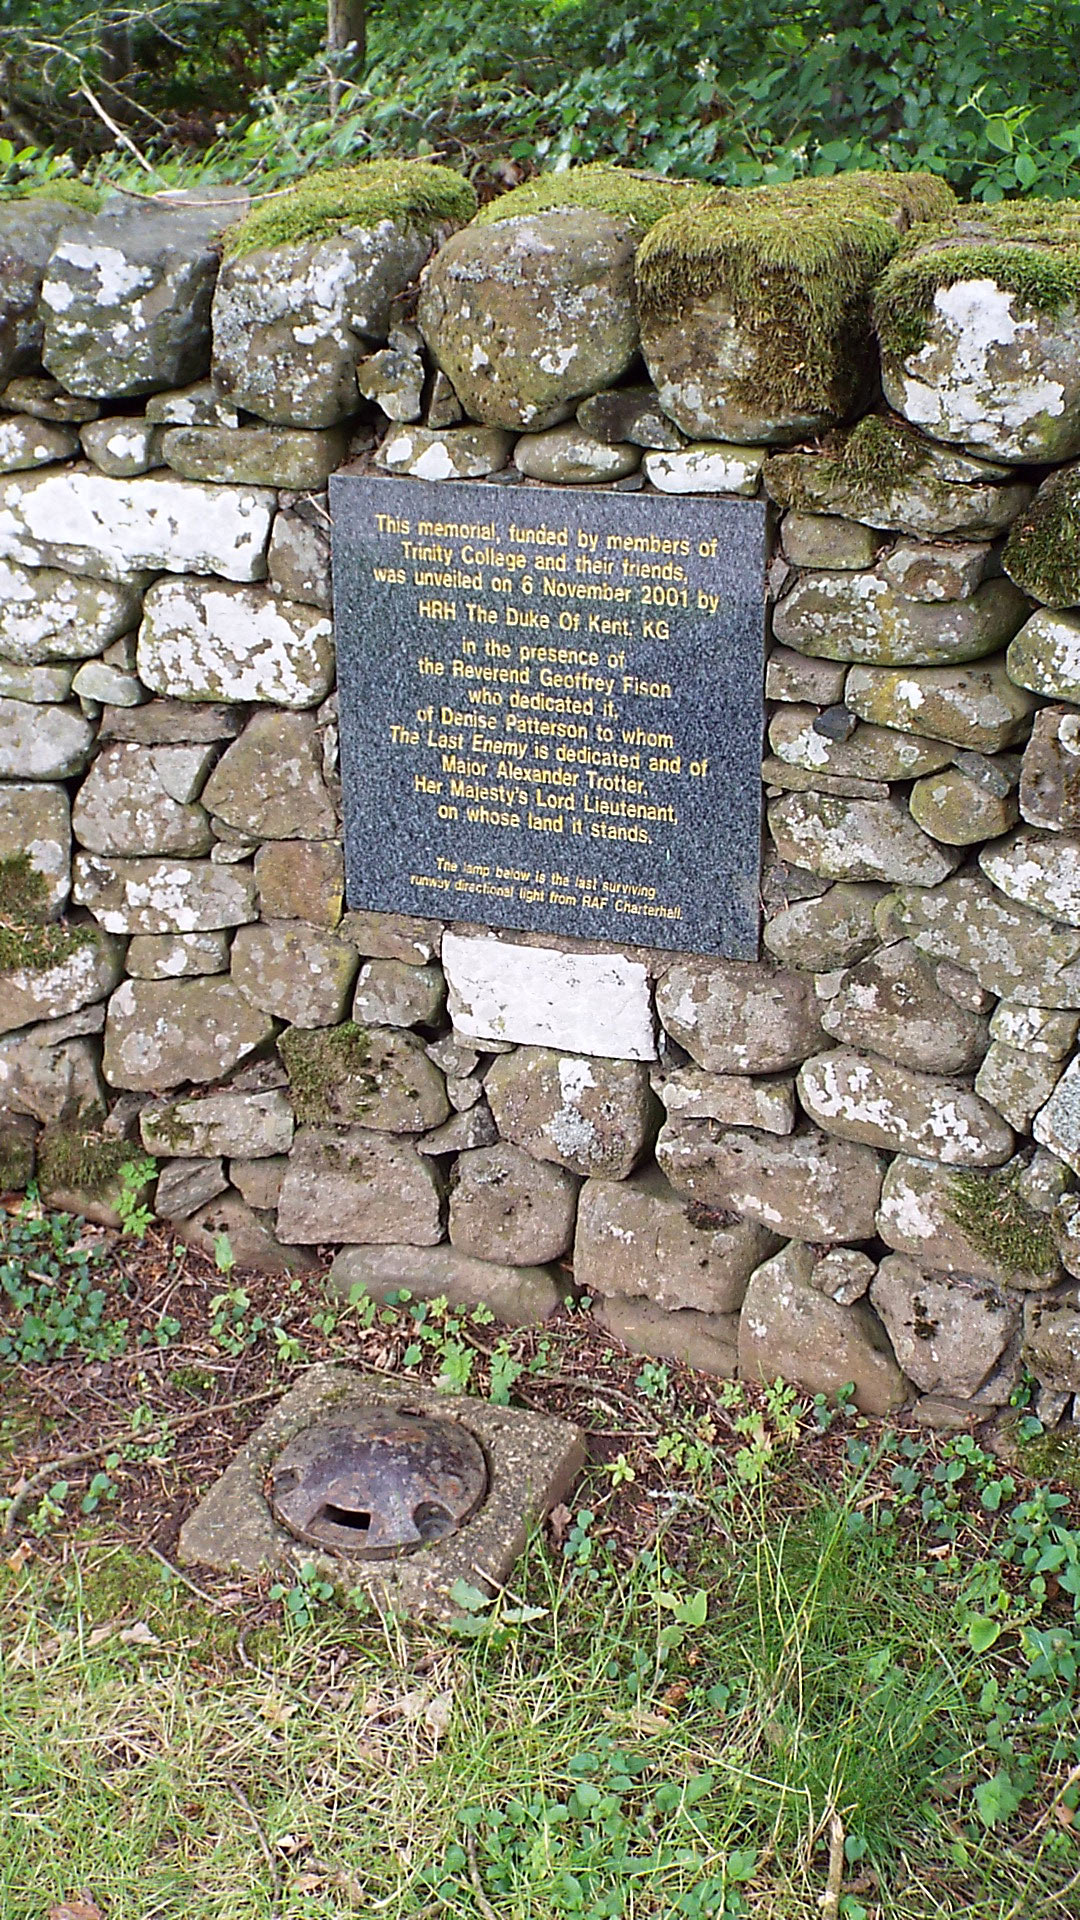 The Plaque behind the Memorial to Richard Hilary. Beneath the Plaque is a runway light from RAF Charterhall